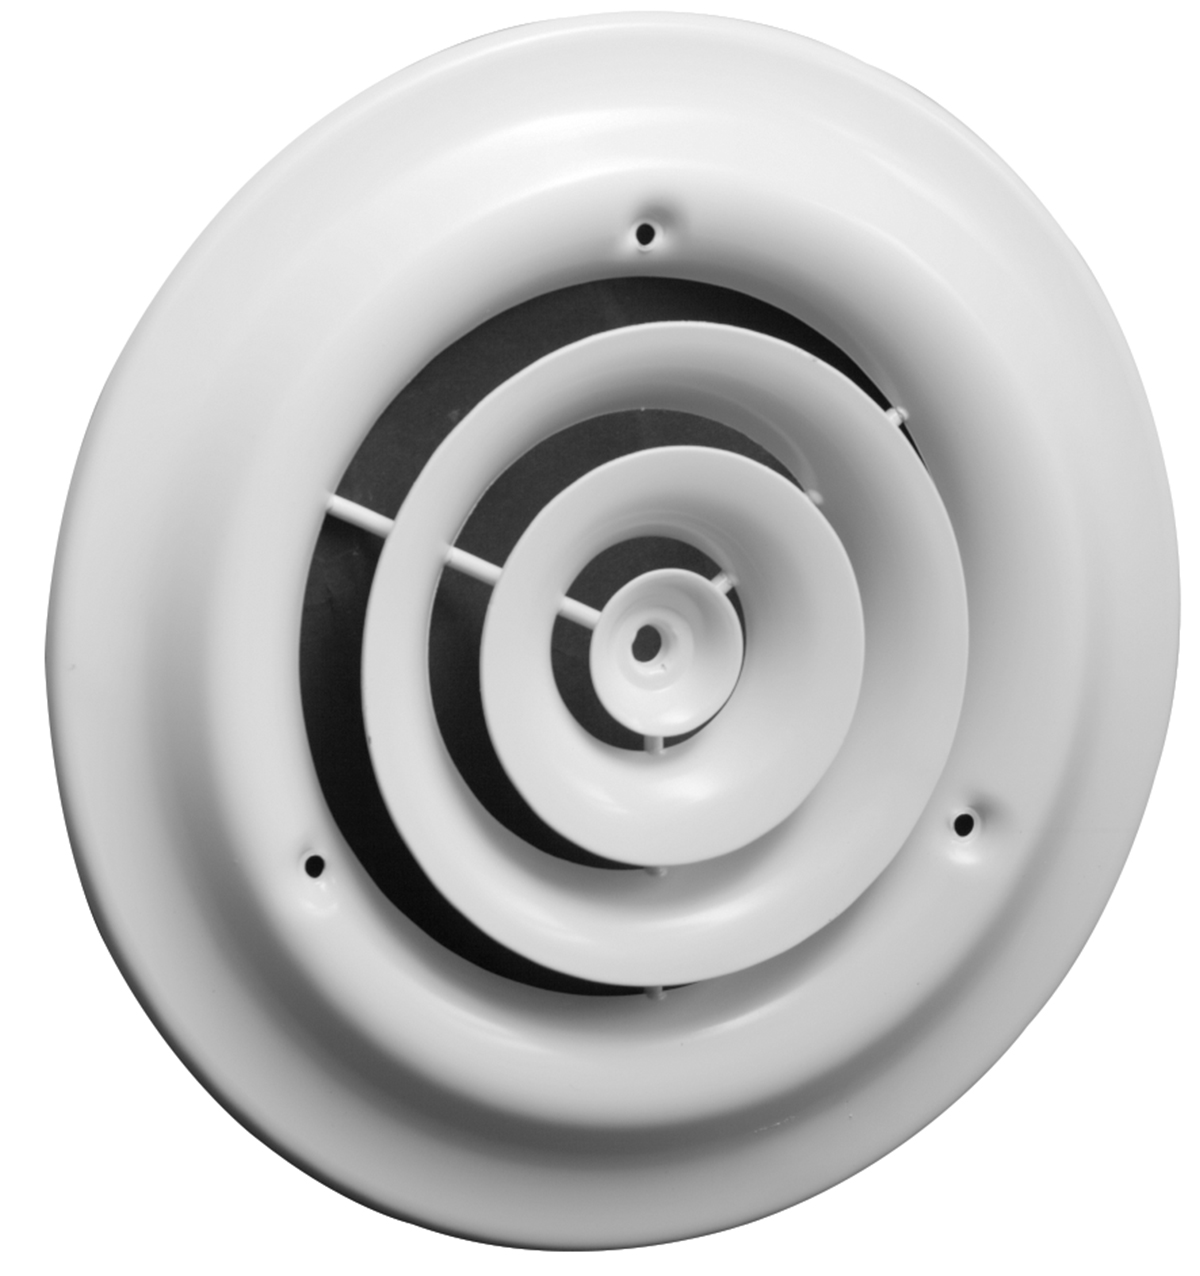 pnintelligentdialogue marvelous ceiling vent cone white fixed with com x air gallery round diffuser register